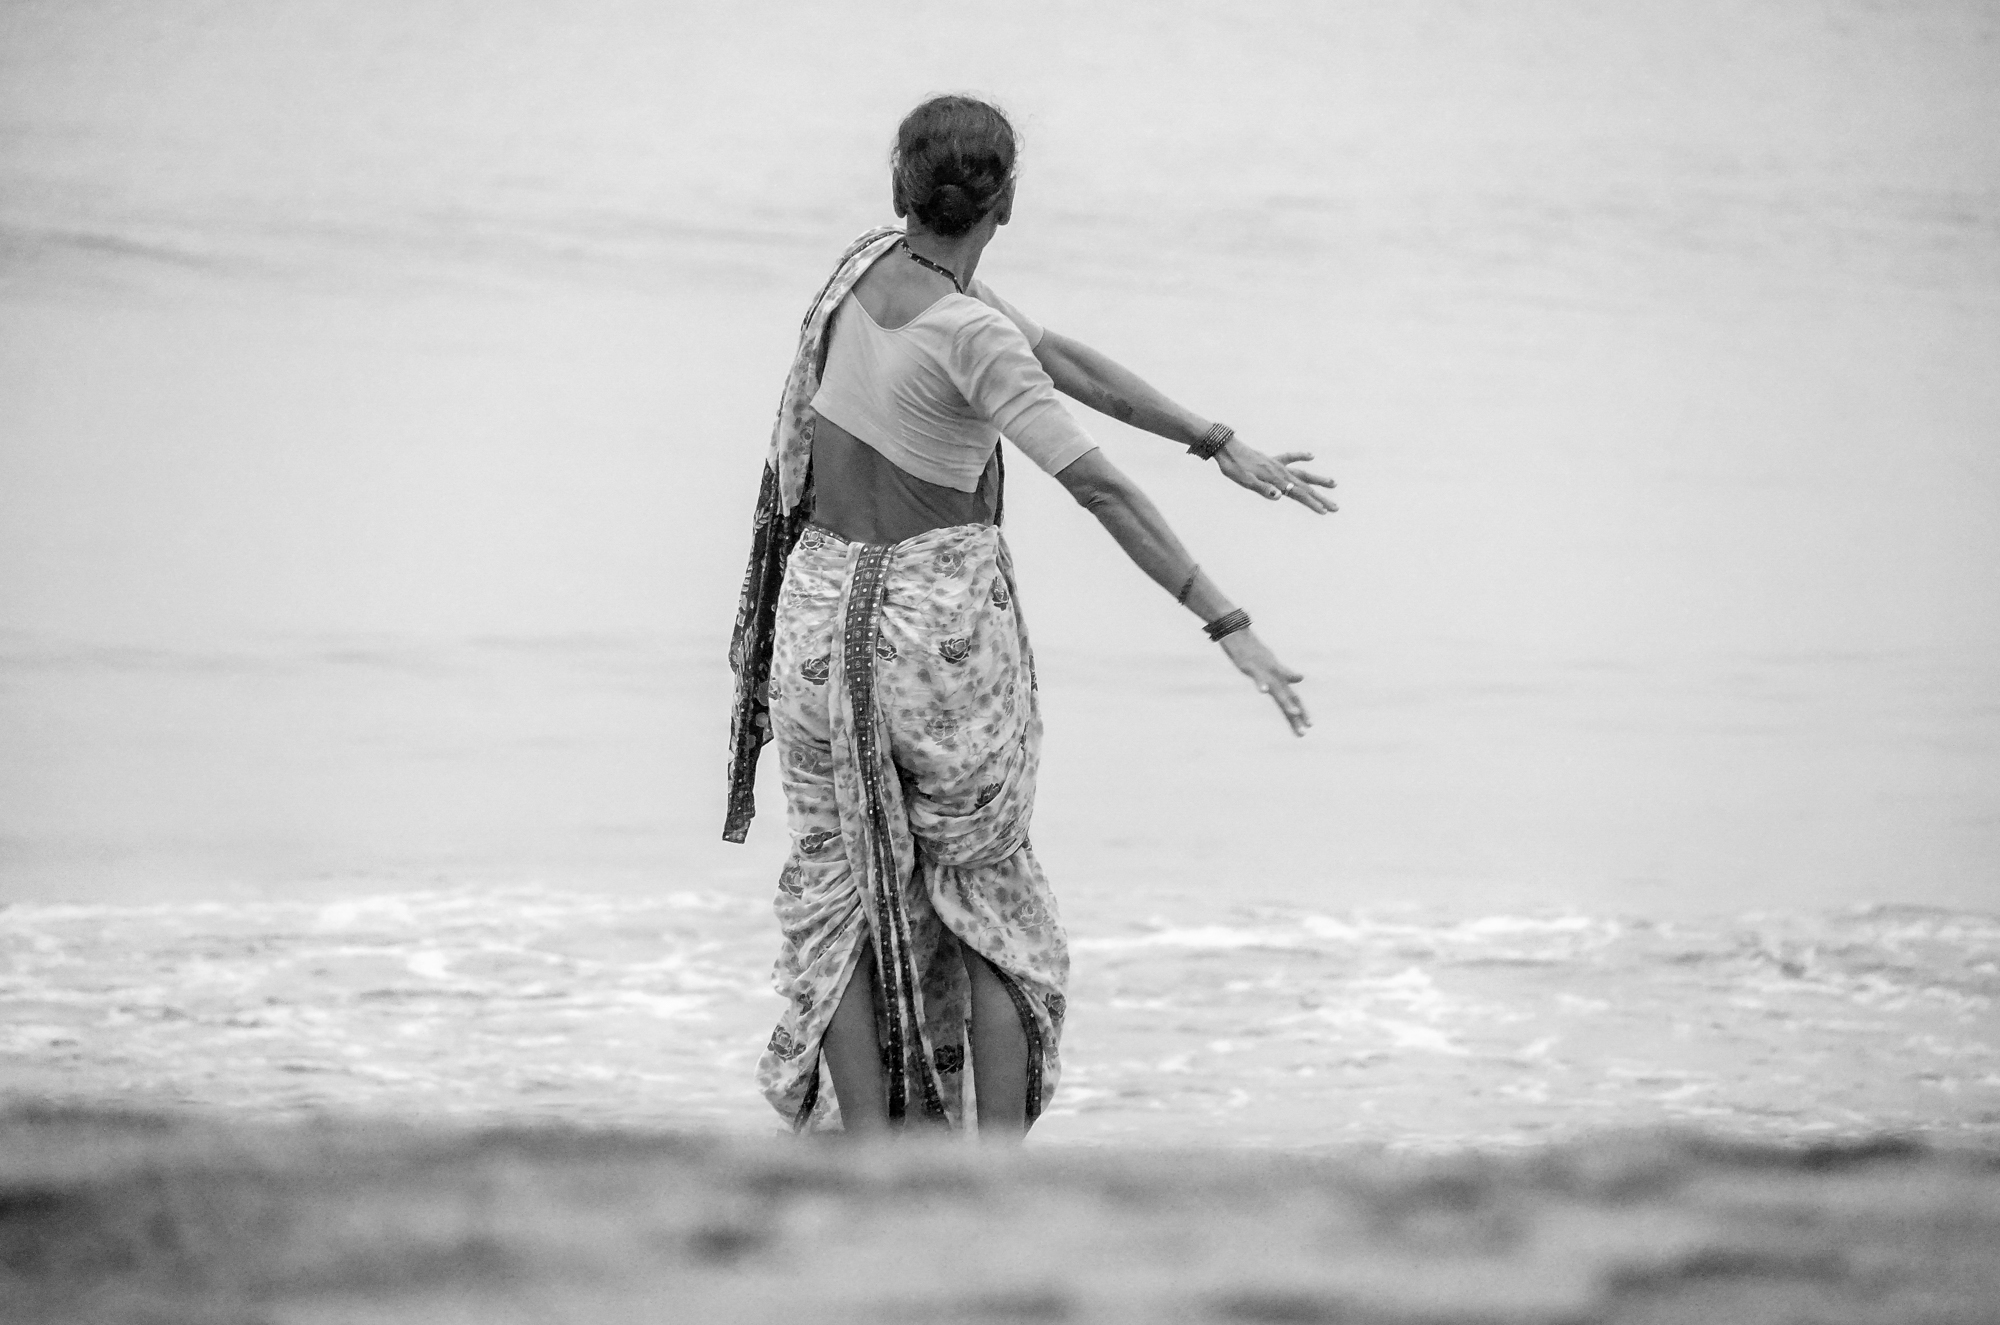 an old lady at versova beach stretching in the early hours